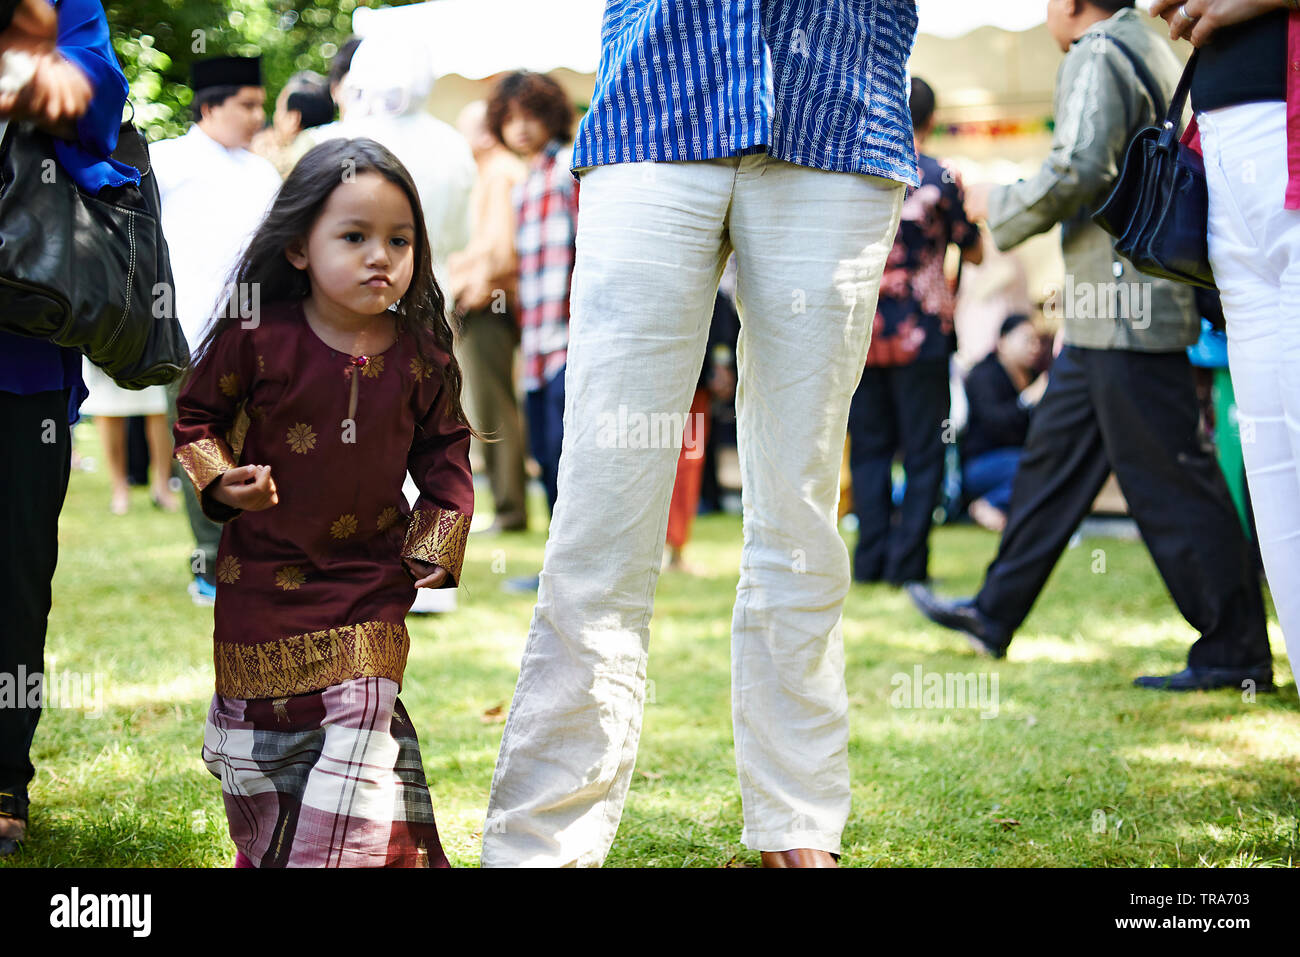 Two young Malay sisters wearing traditional Baju Kurung outfit during Hari Raya celebration happily running around between a crowd of people - Stock Image